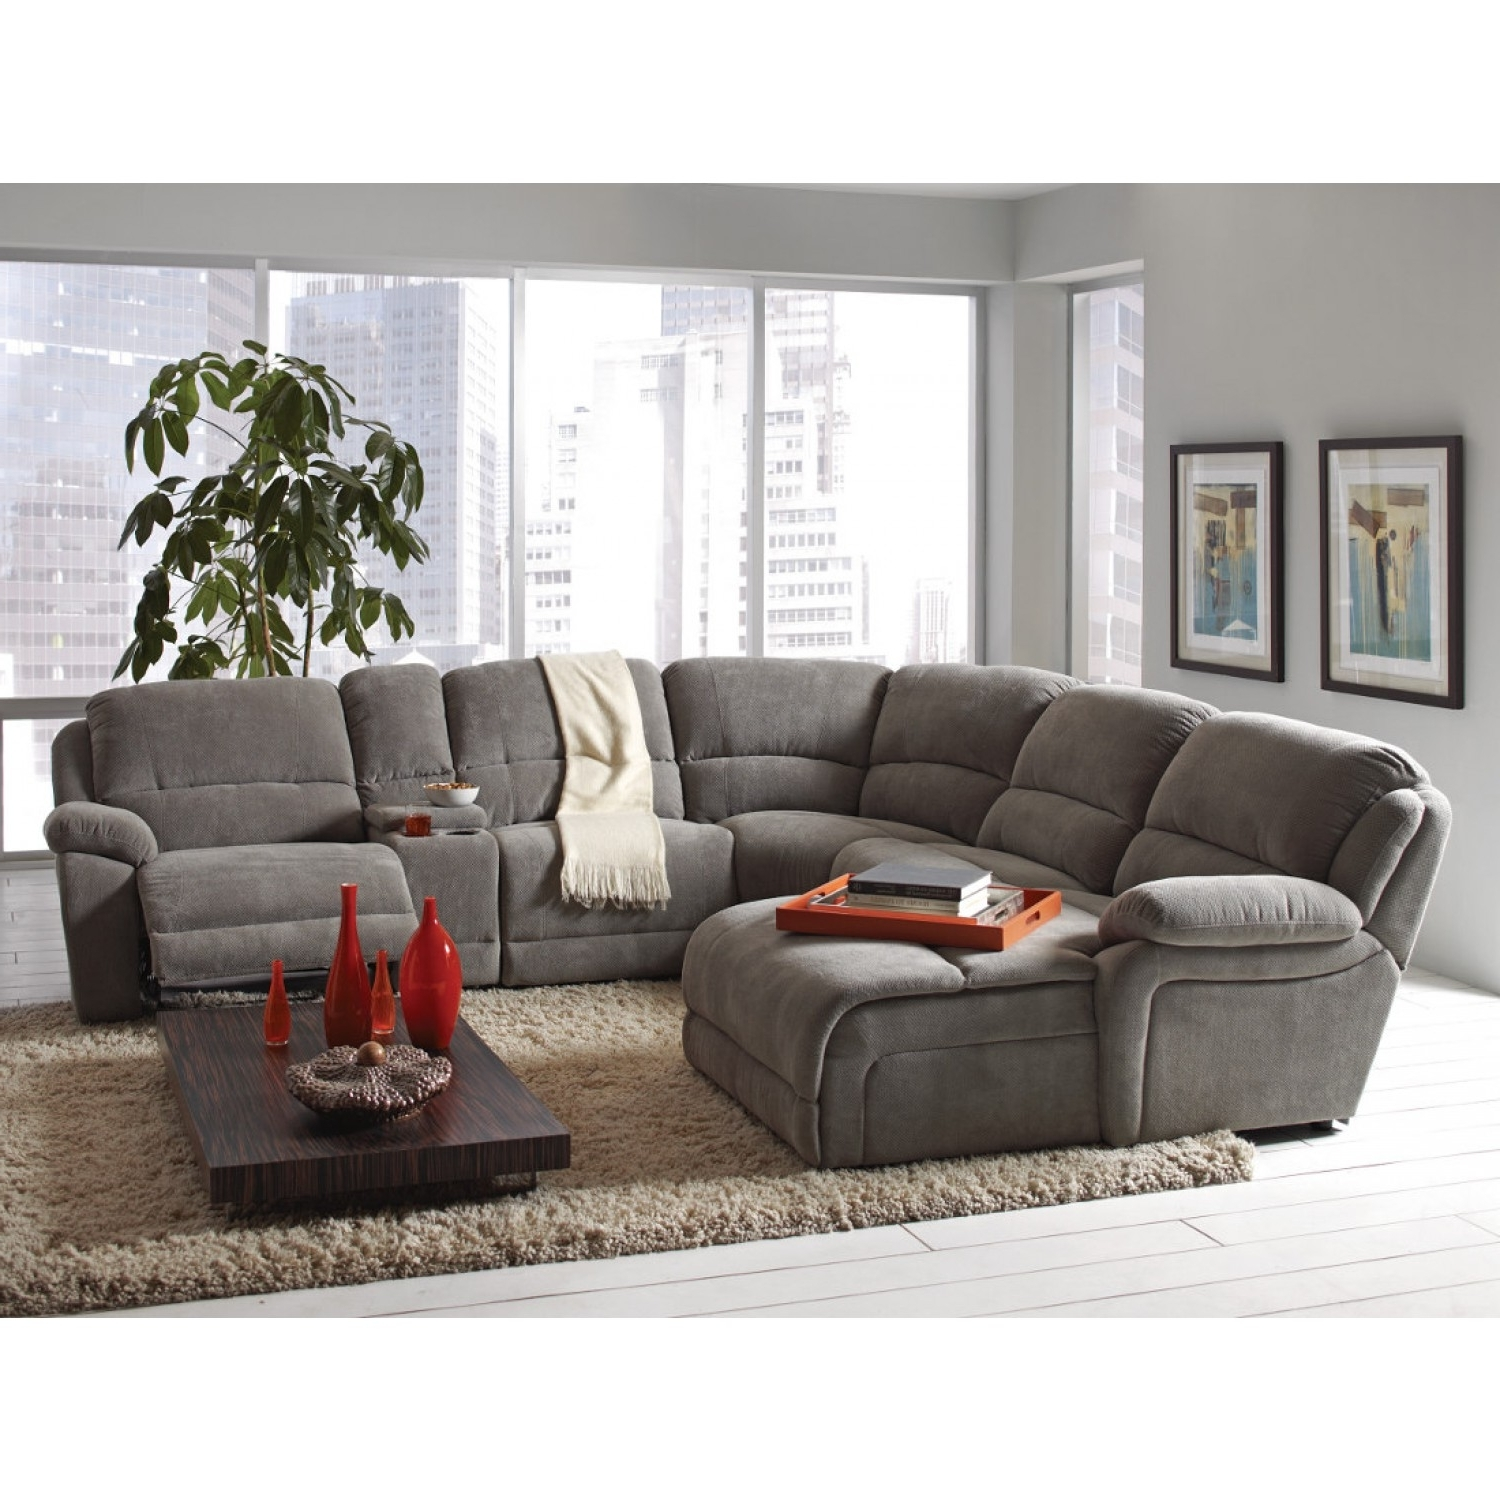 Layaway Sectional Sofas In Recent Coaster Mackenzie Silver 6 Piece Reclining Sectional Sofa With (View 8 of 15)